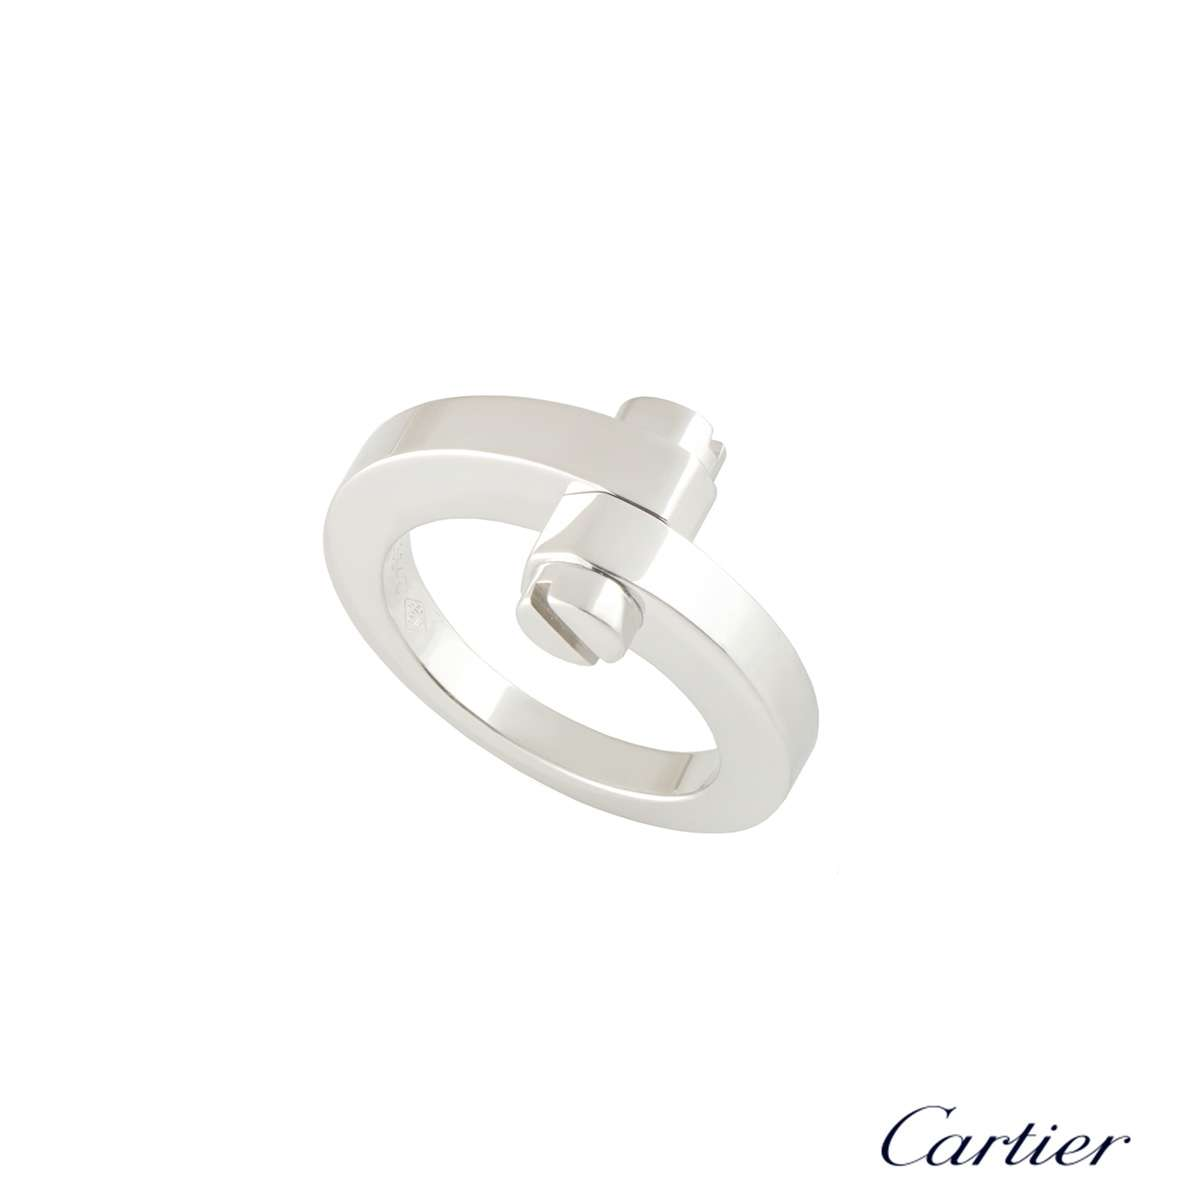 Cartier White Gold Menotte Ring